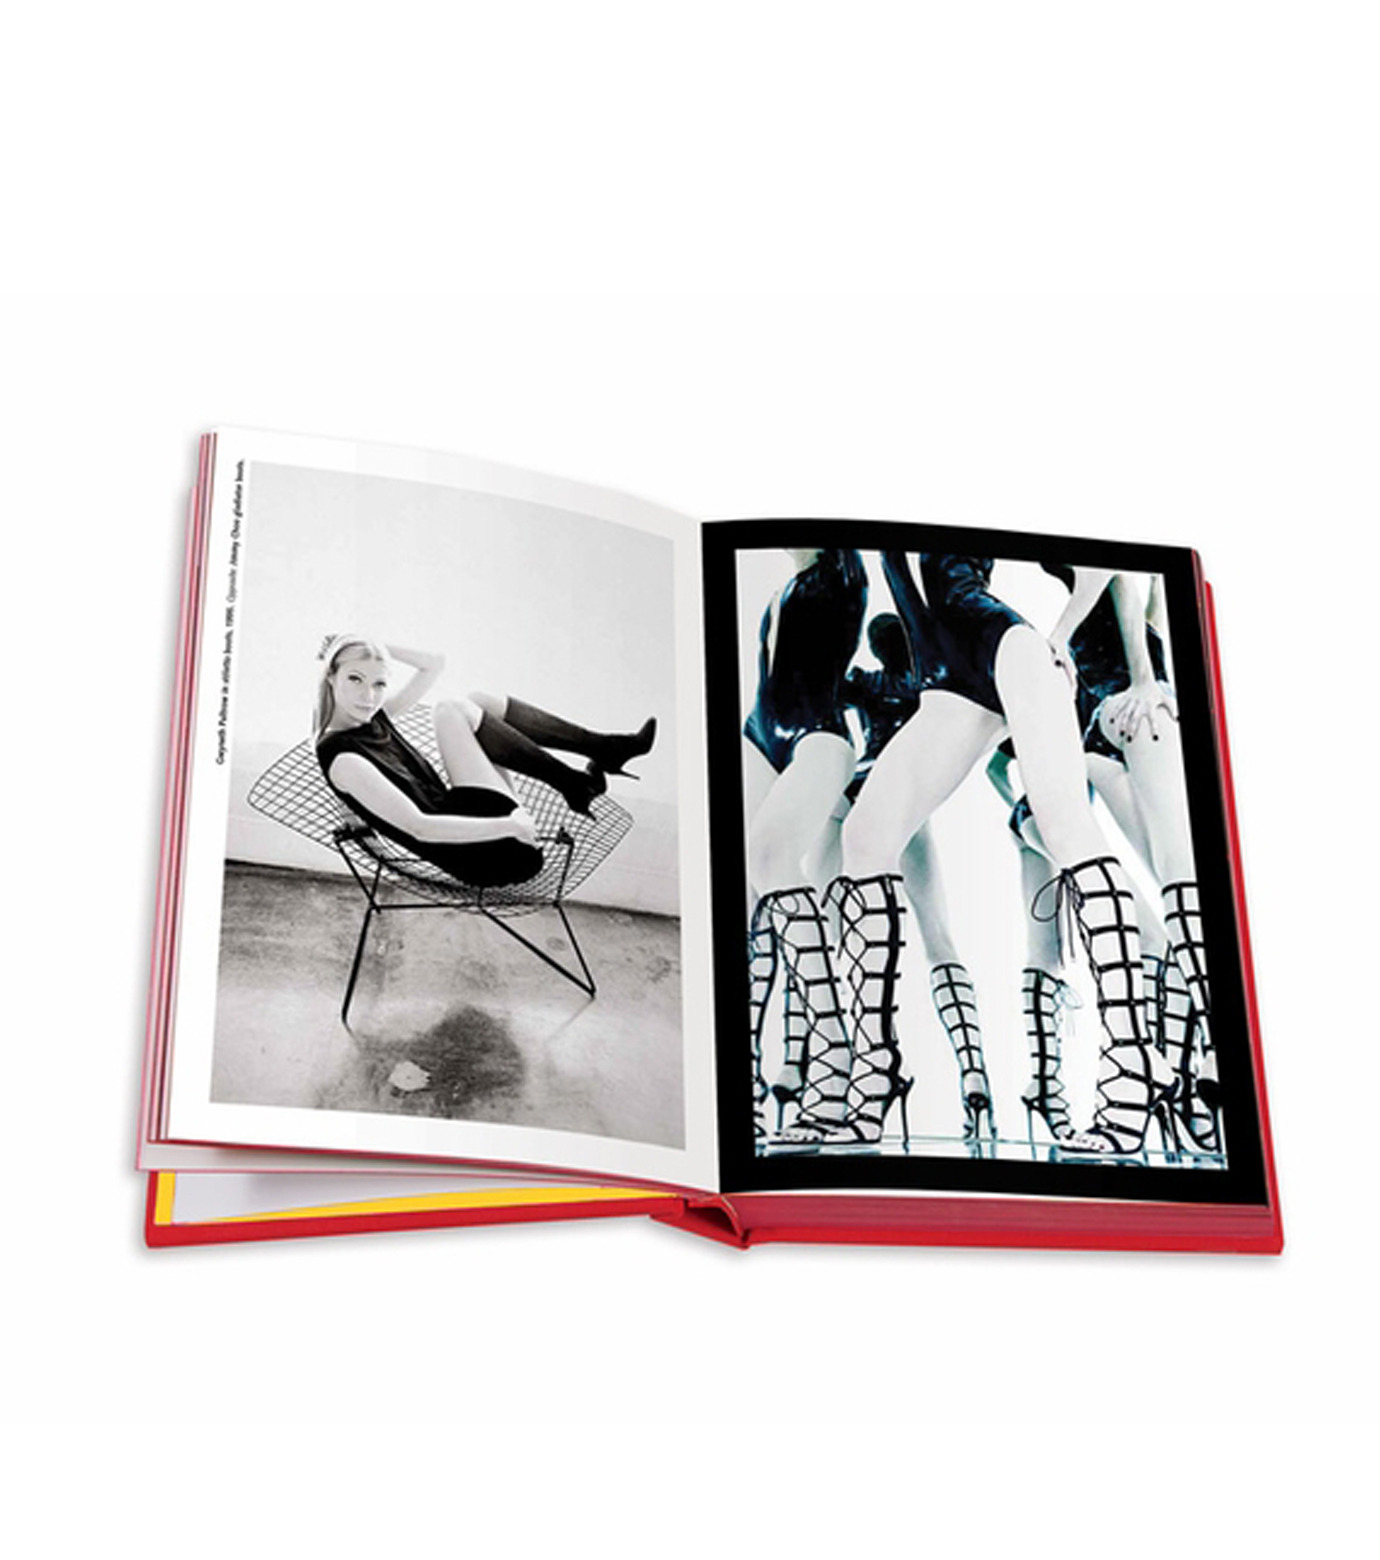 Assouline(アスリーヌ)のThe Shoe Book-RED(インテリア/OTHER-GOODS/interior/OTHER-GOODS)-978161428153-62 拡大詳細画像9